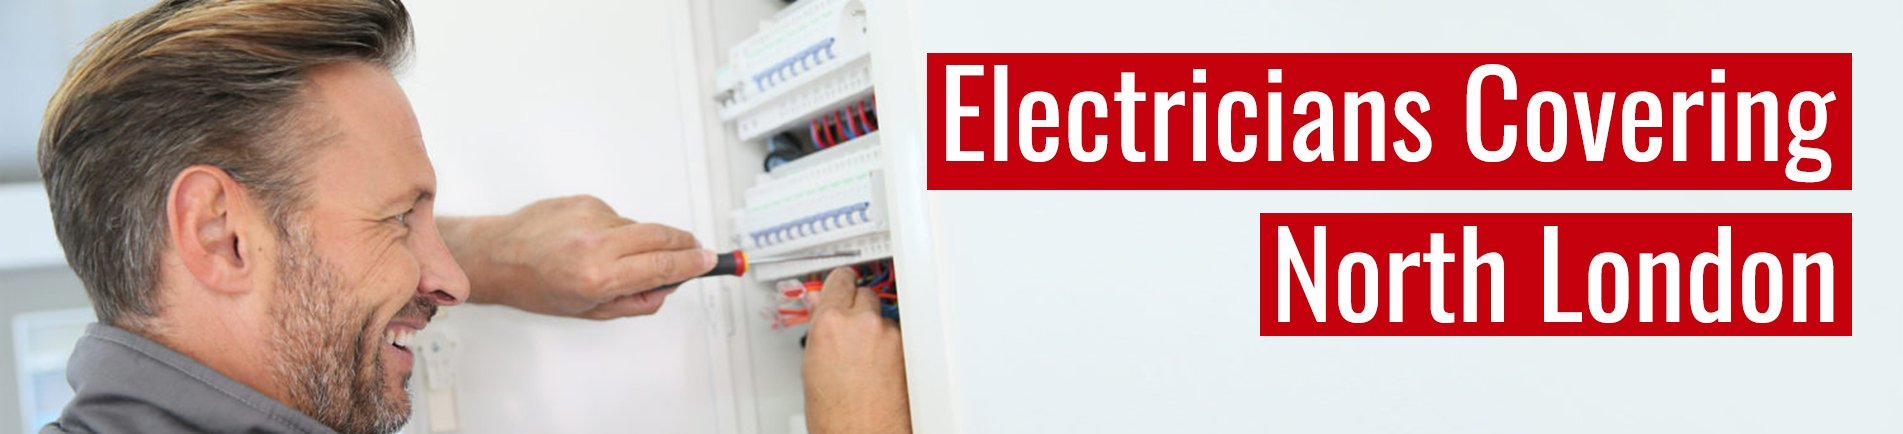 Electricians Covering London & Kent